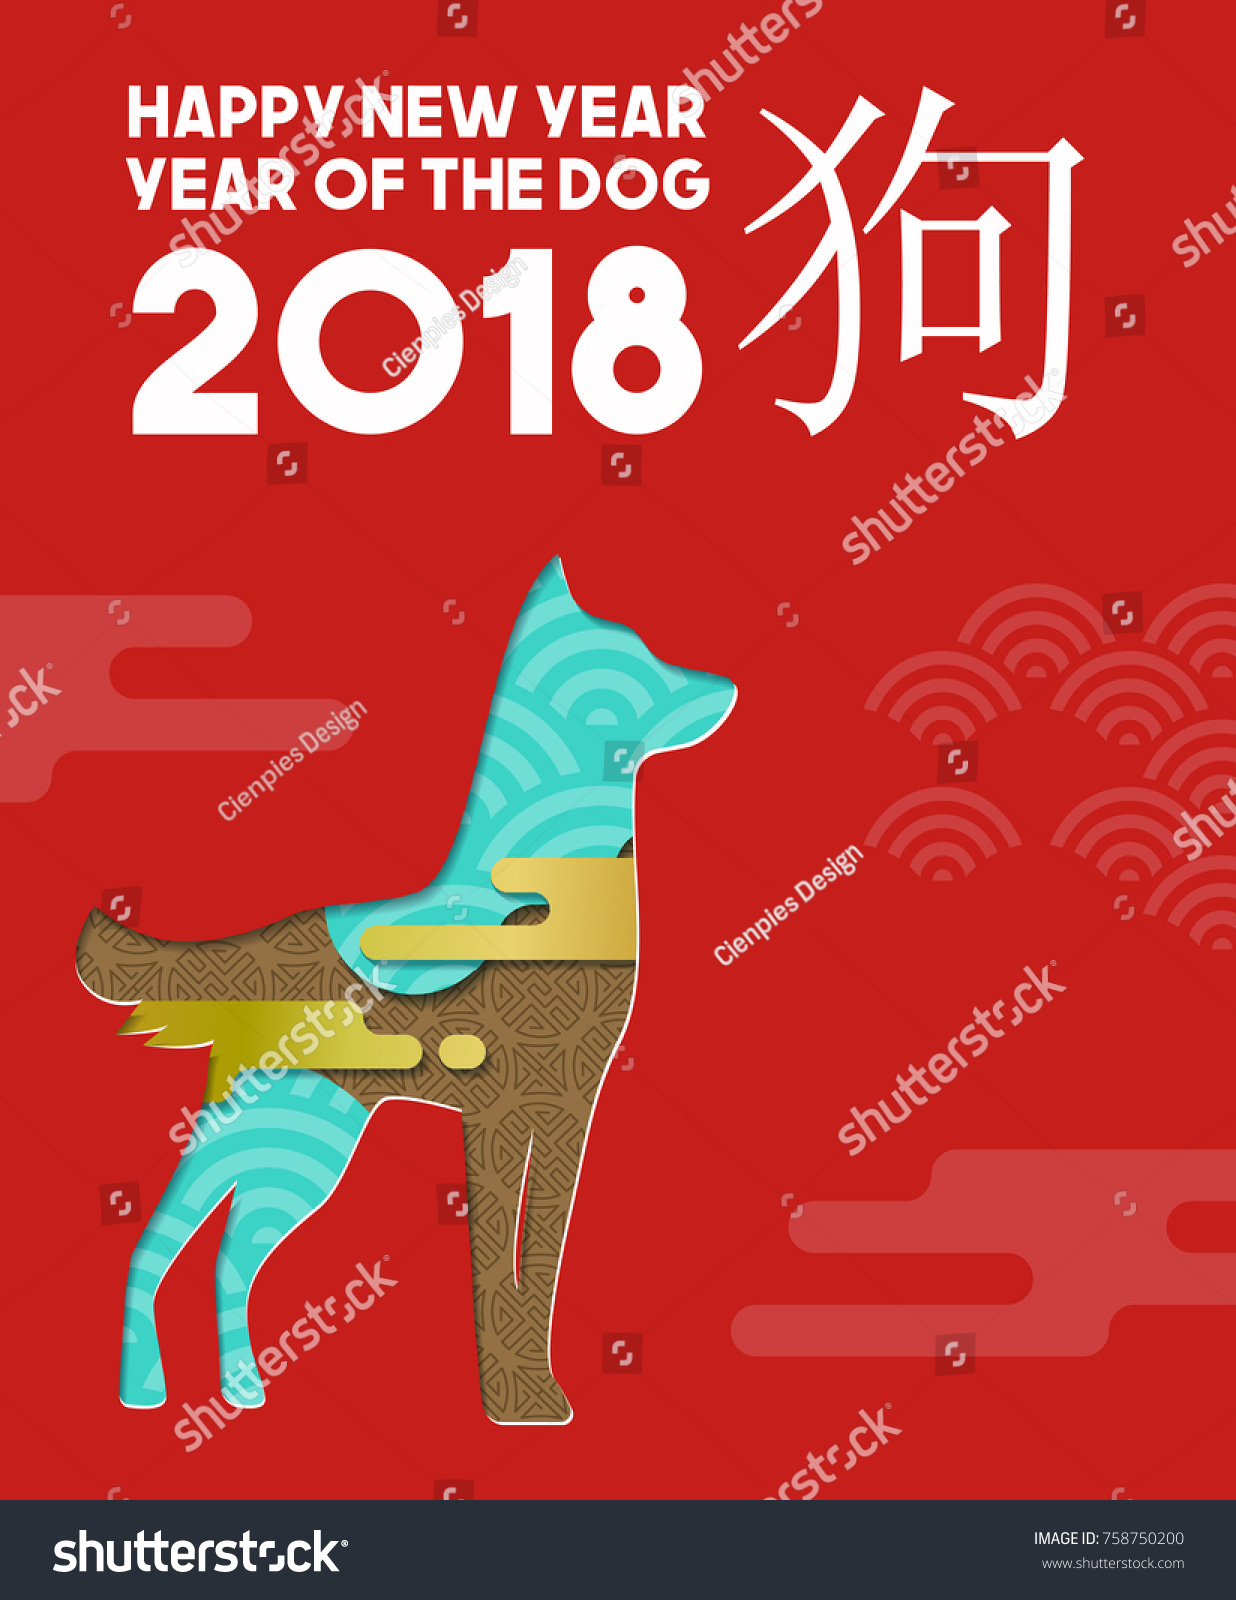 Facebook Stock Quotes Happy Chinese New Year 2017 Wishes Sms Quotes Images Facebook